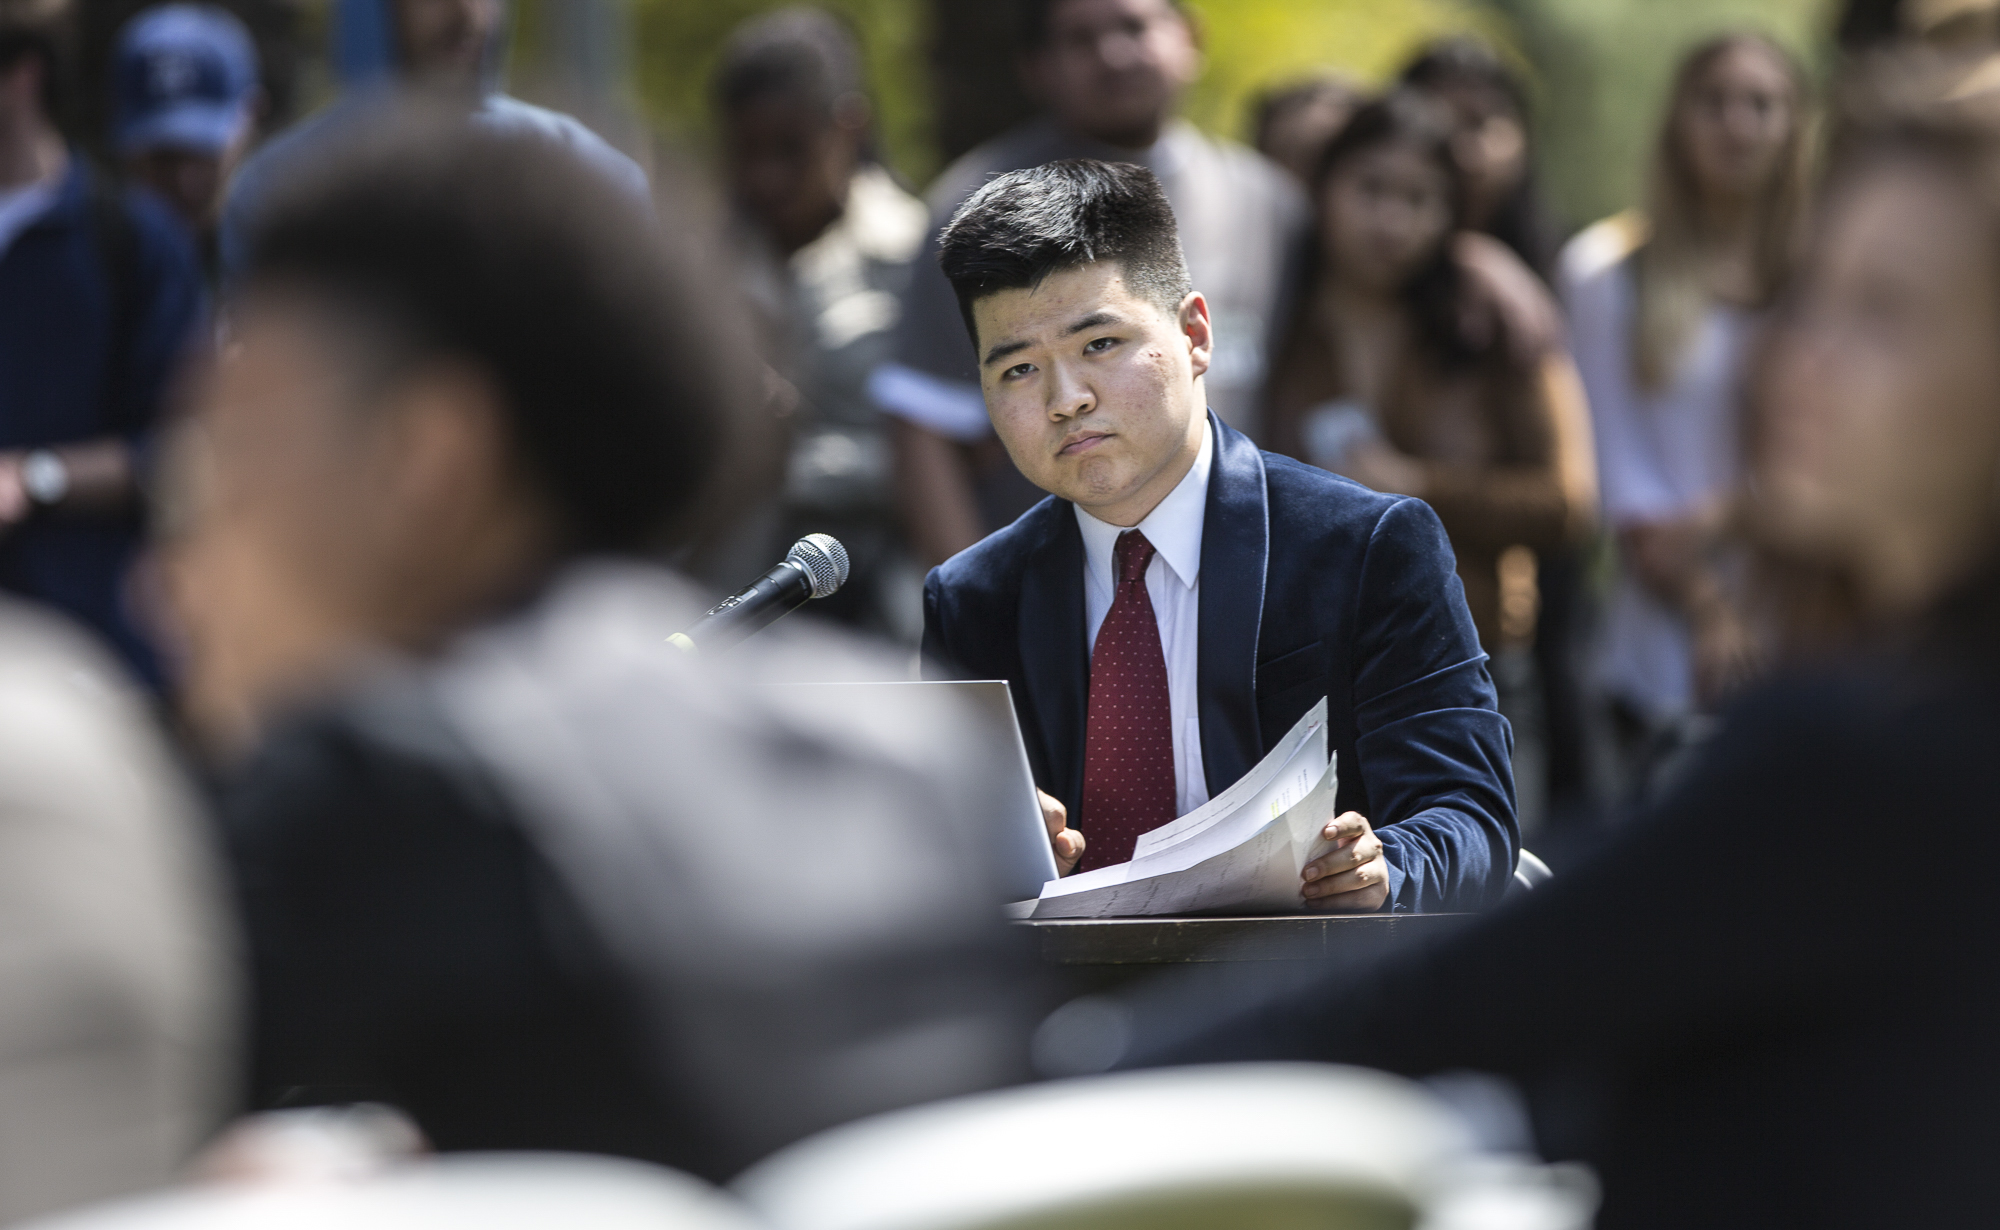 Santa Monica College Corsair Newspaper Editor in Chief Edward Lee reads questions sent in from the audience of students and faculty for Associated Student Board candidates to answer during the A.S election debate on the quad of the Santa Monica College main campus in Santa Monica California, on Tuesday, April 3 2018. The SMC Corsair Newspaper hosted the forum for A.S debate that took place. (Matthew Martin/Corsair Photo)